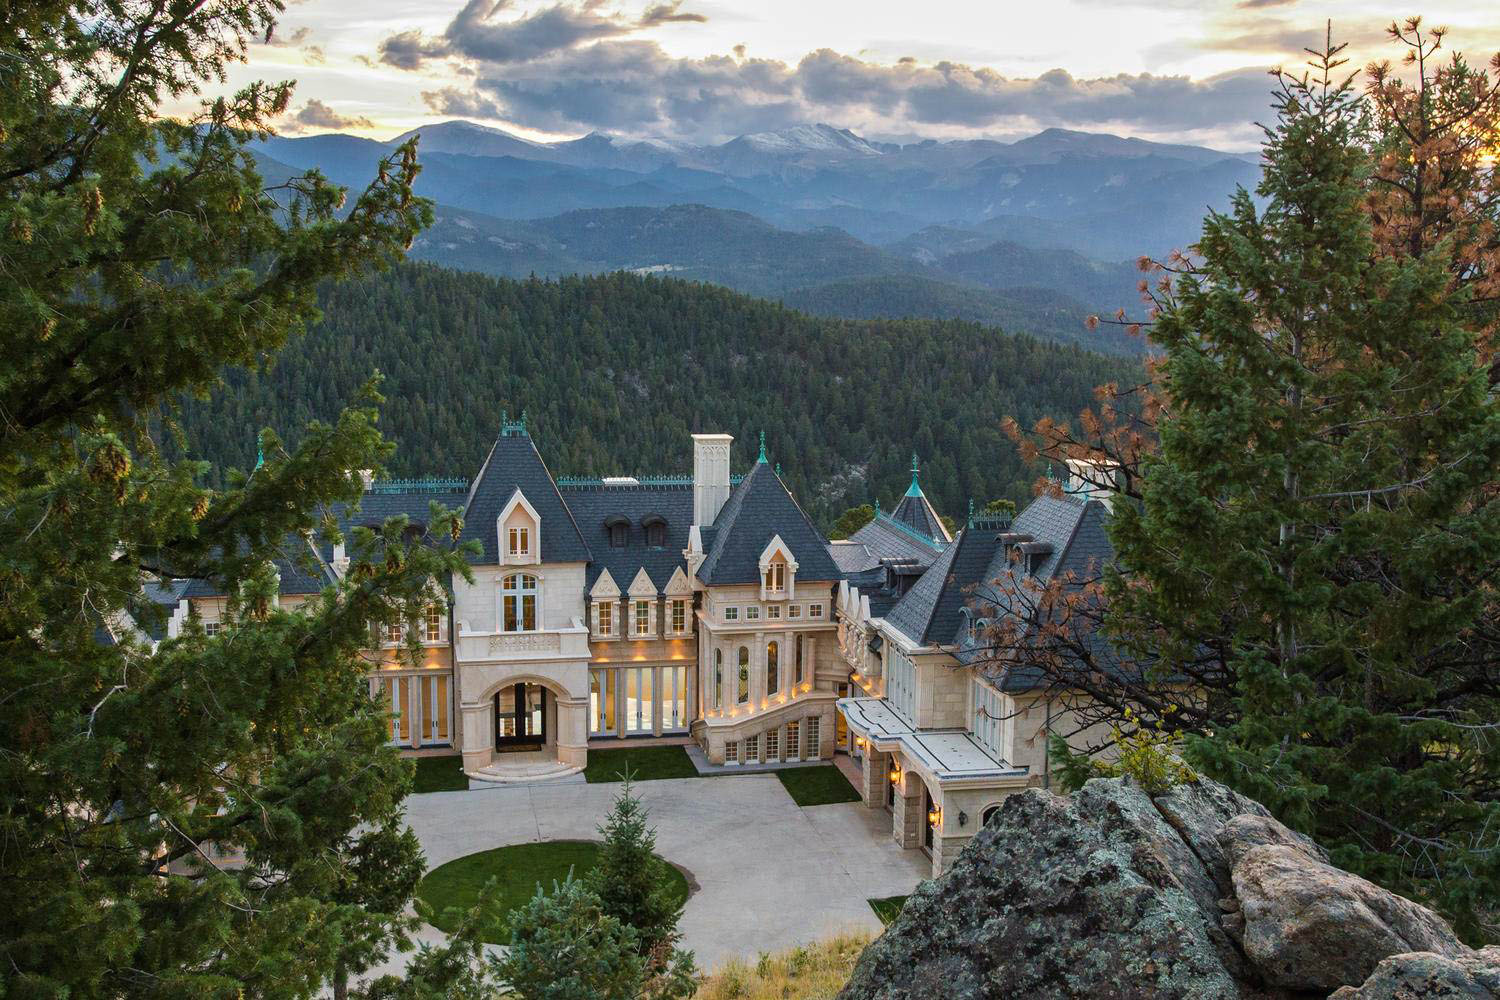 Grand Chateau Residence In The Colorado Rocky Mountains Interiors Inside Ideas Interiors design about Everything [magnanprojects.com]